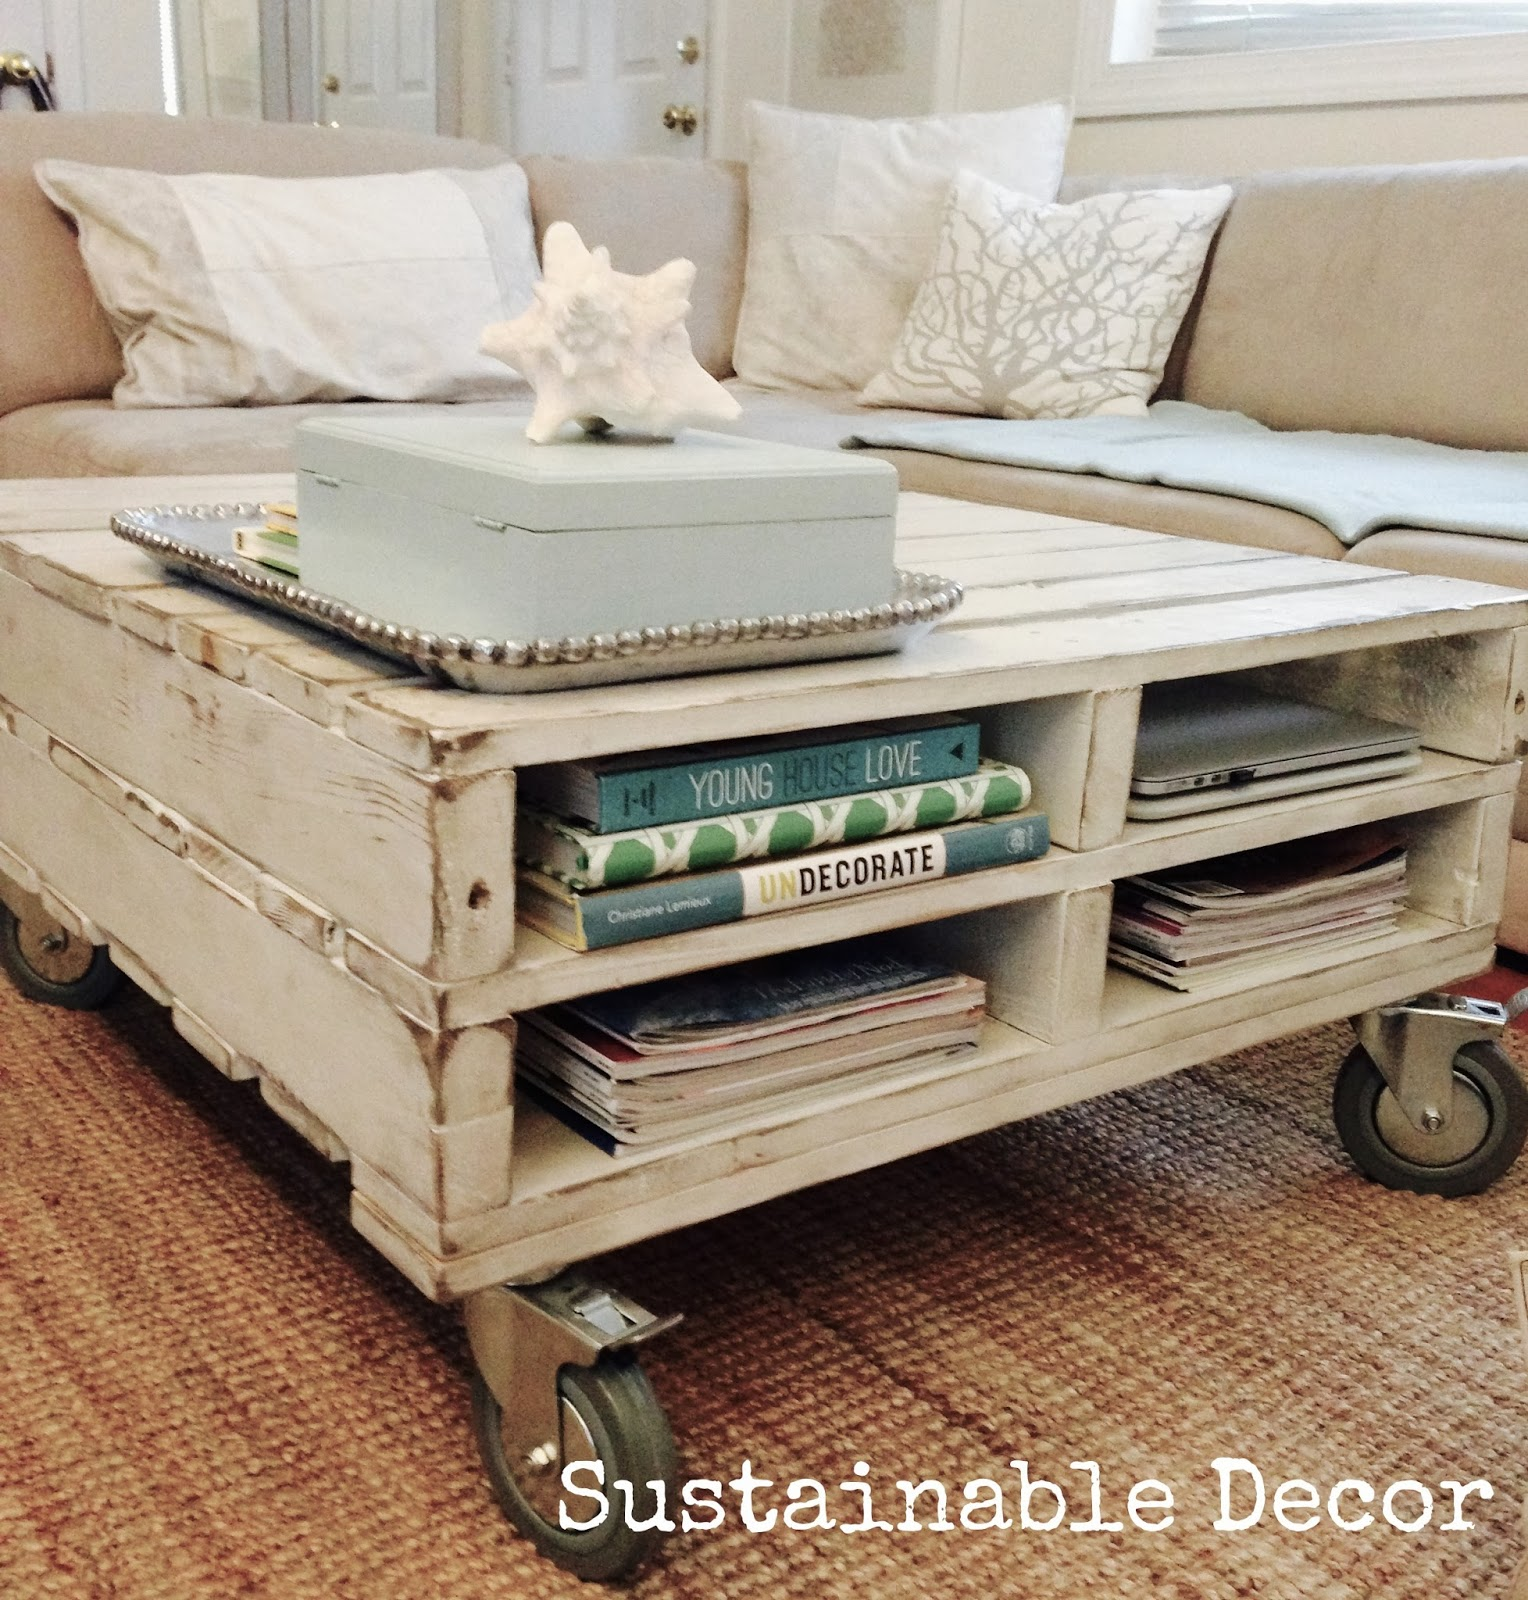 20 awesome diy pallet projects little house of four creating a beautiful home one thrifty. Black Bedroom Furniture Sets. Home Design Ideas